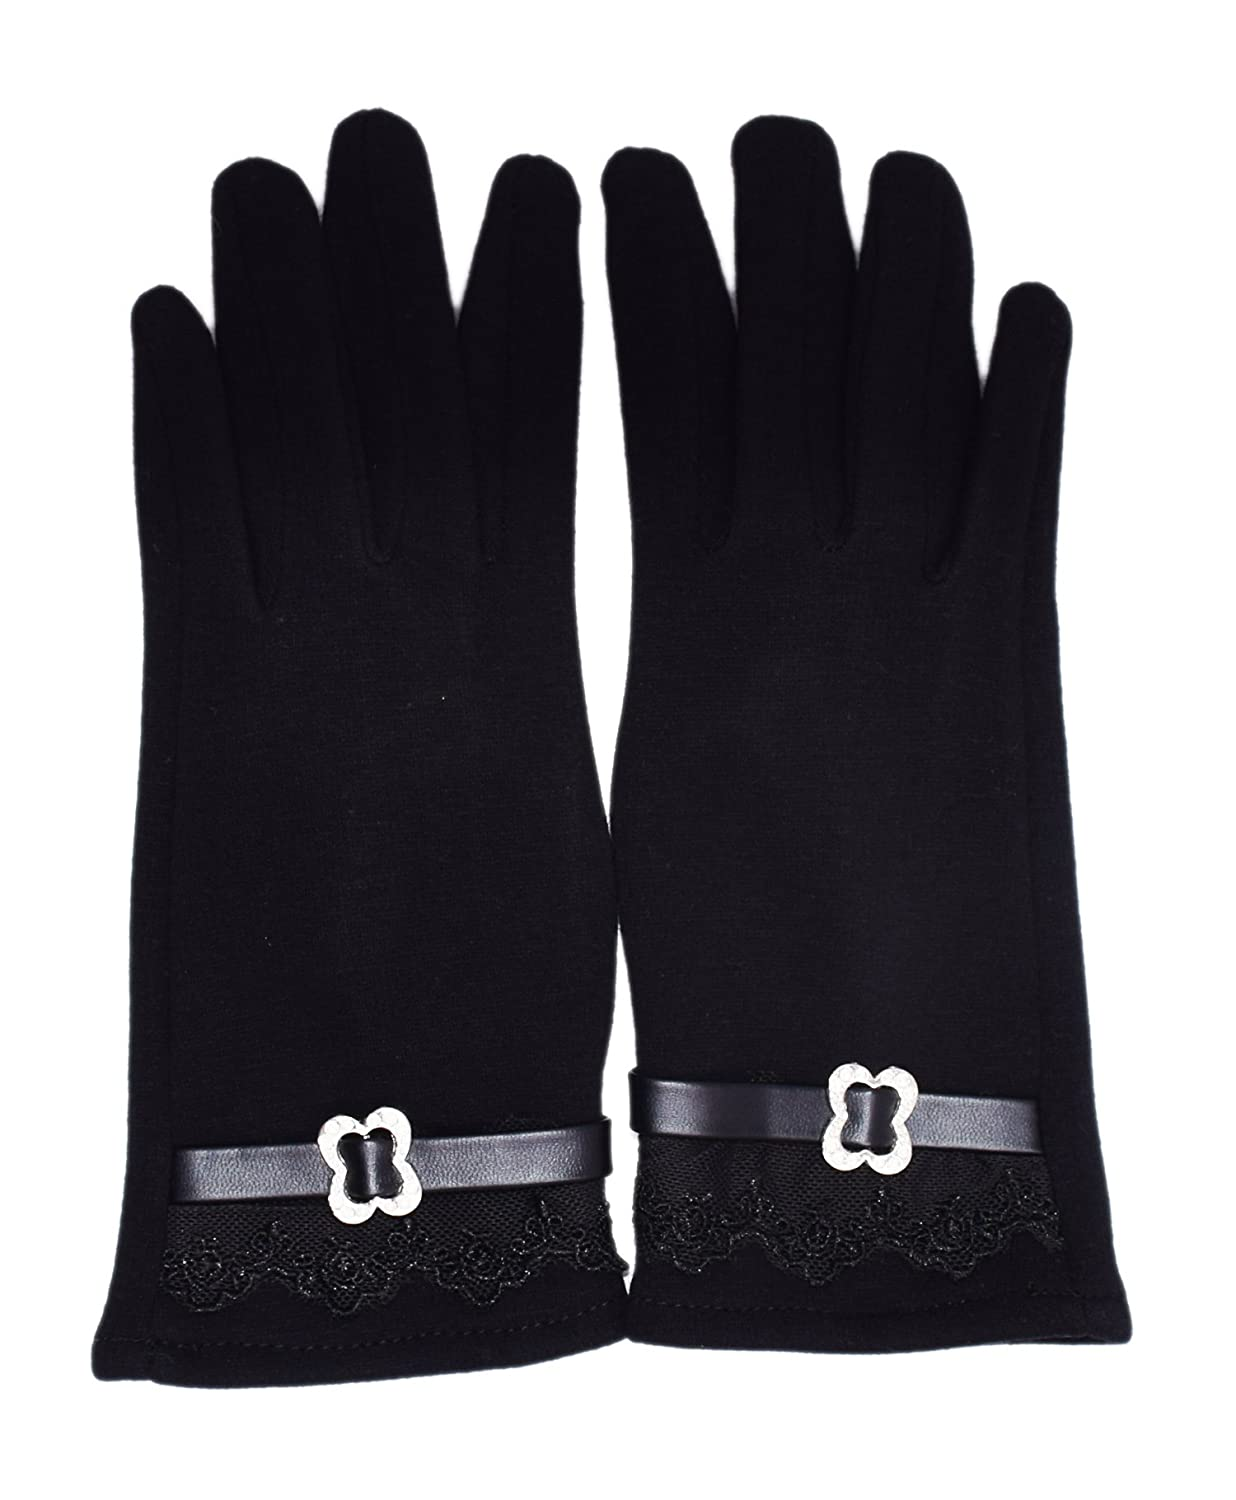 Comfy Polar Fleece Windproof//Coldproof Touch Screen Mittens Gloves for Women Ladies Ideal for Dress//Driving WITERY Womens Touch Screen Gloves Cycling//Motorcycle Camping//Running Gloves Witery Industrial